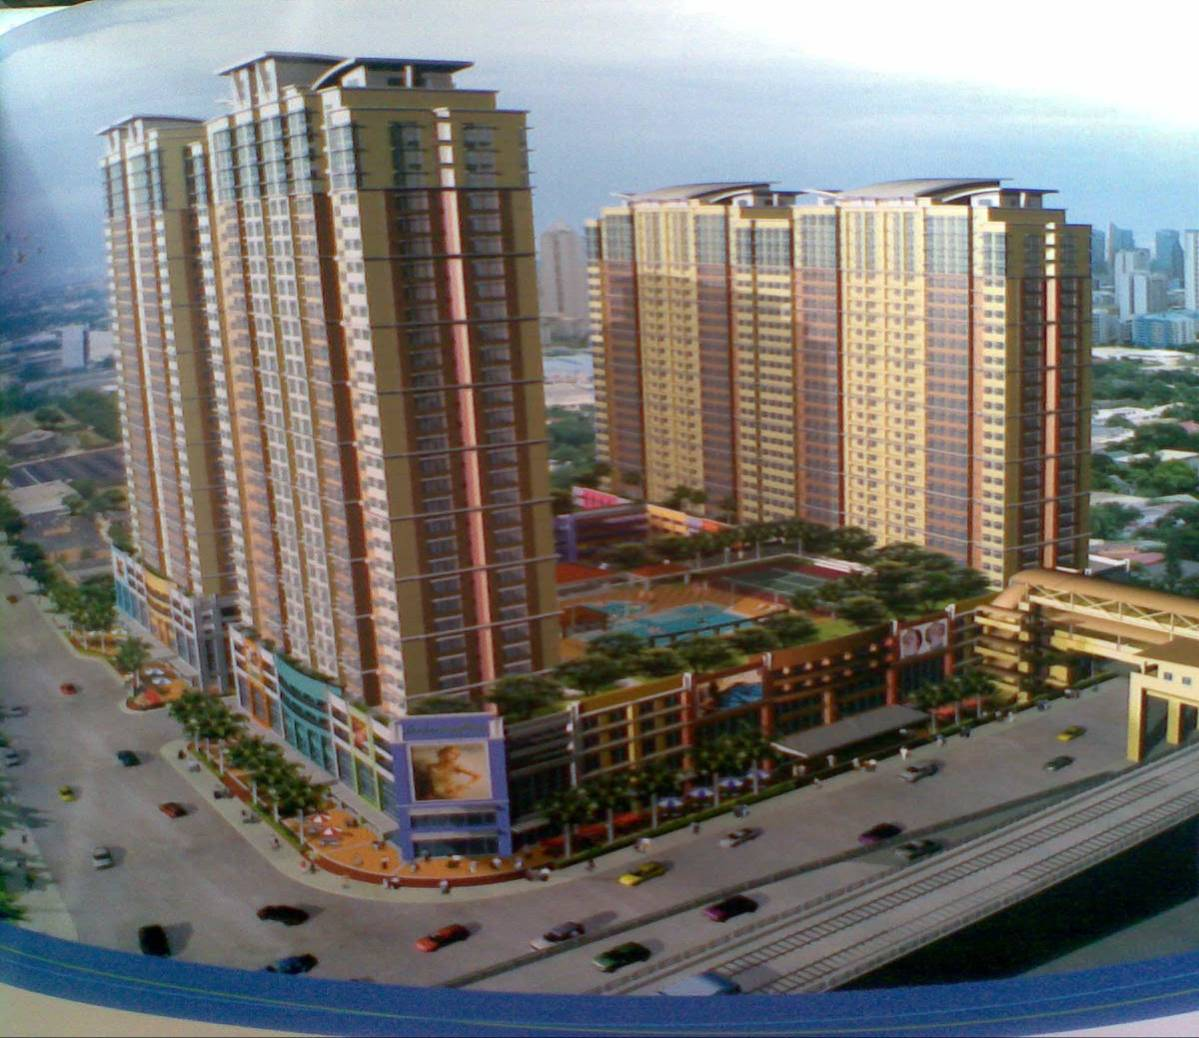 Makati Condo Affordable and No Down Payment. Good Location and Good Investment